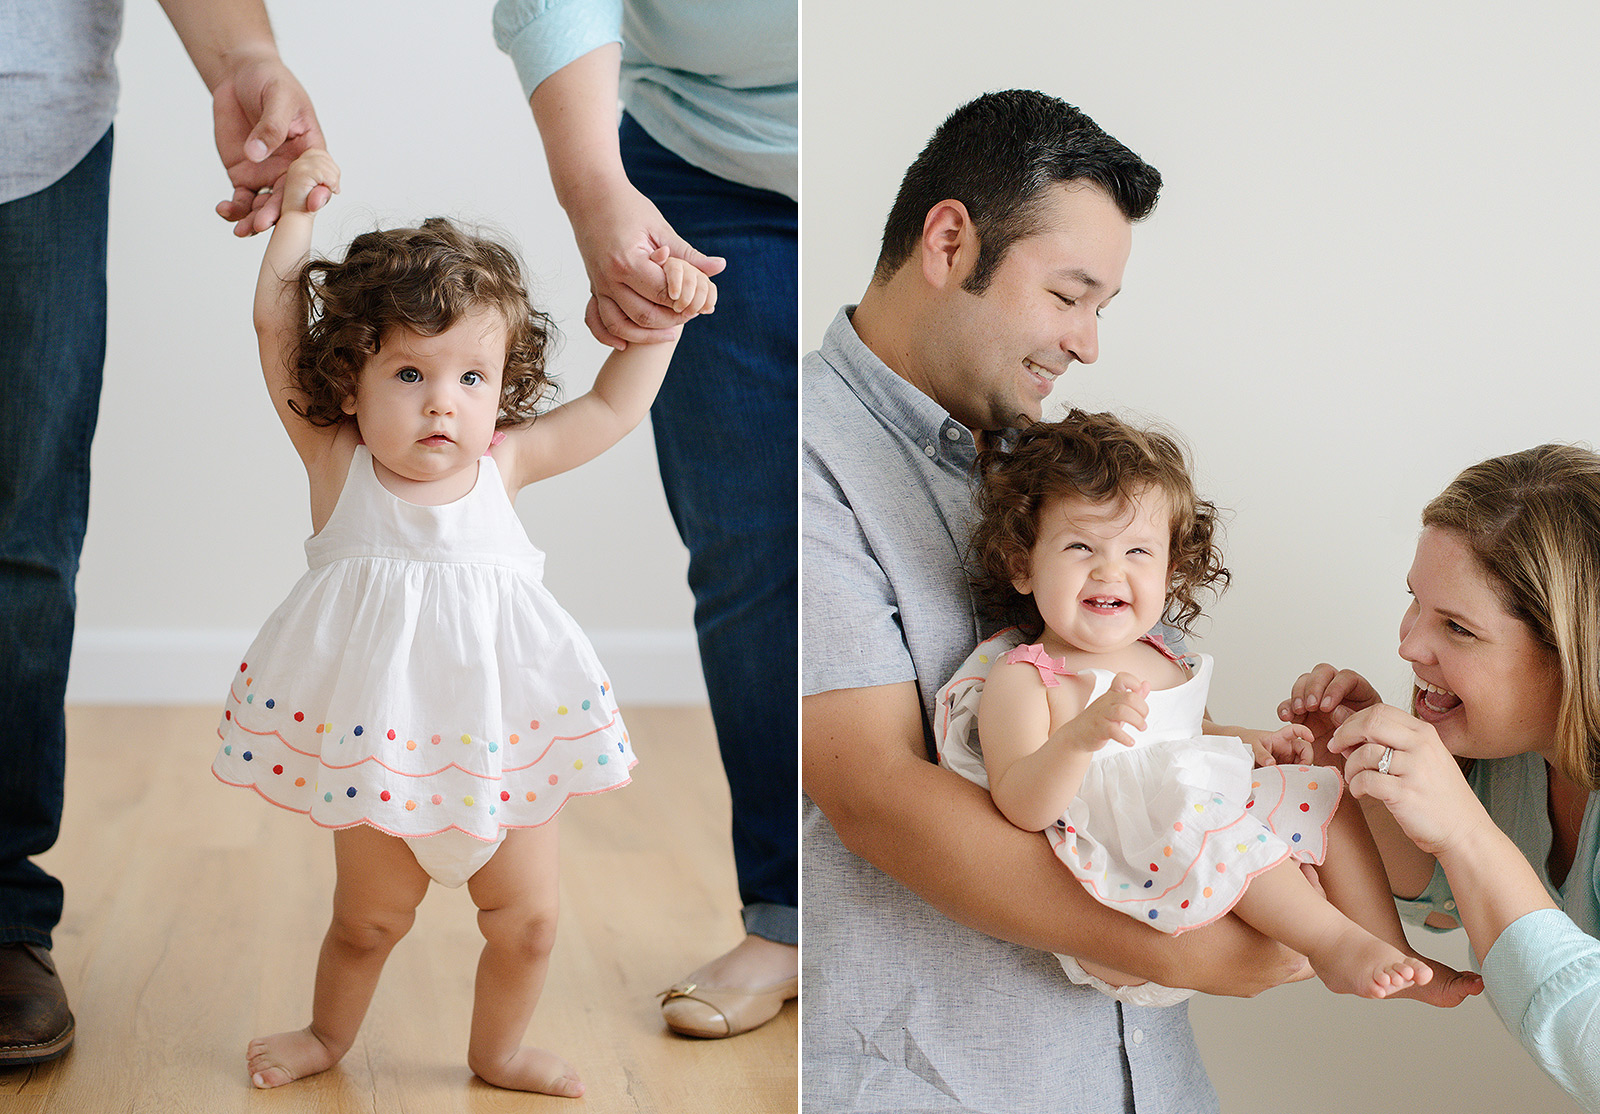 Baby Girl with Curly Hair Being Held by Dad